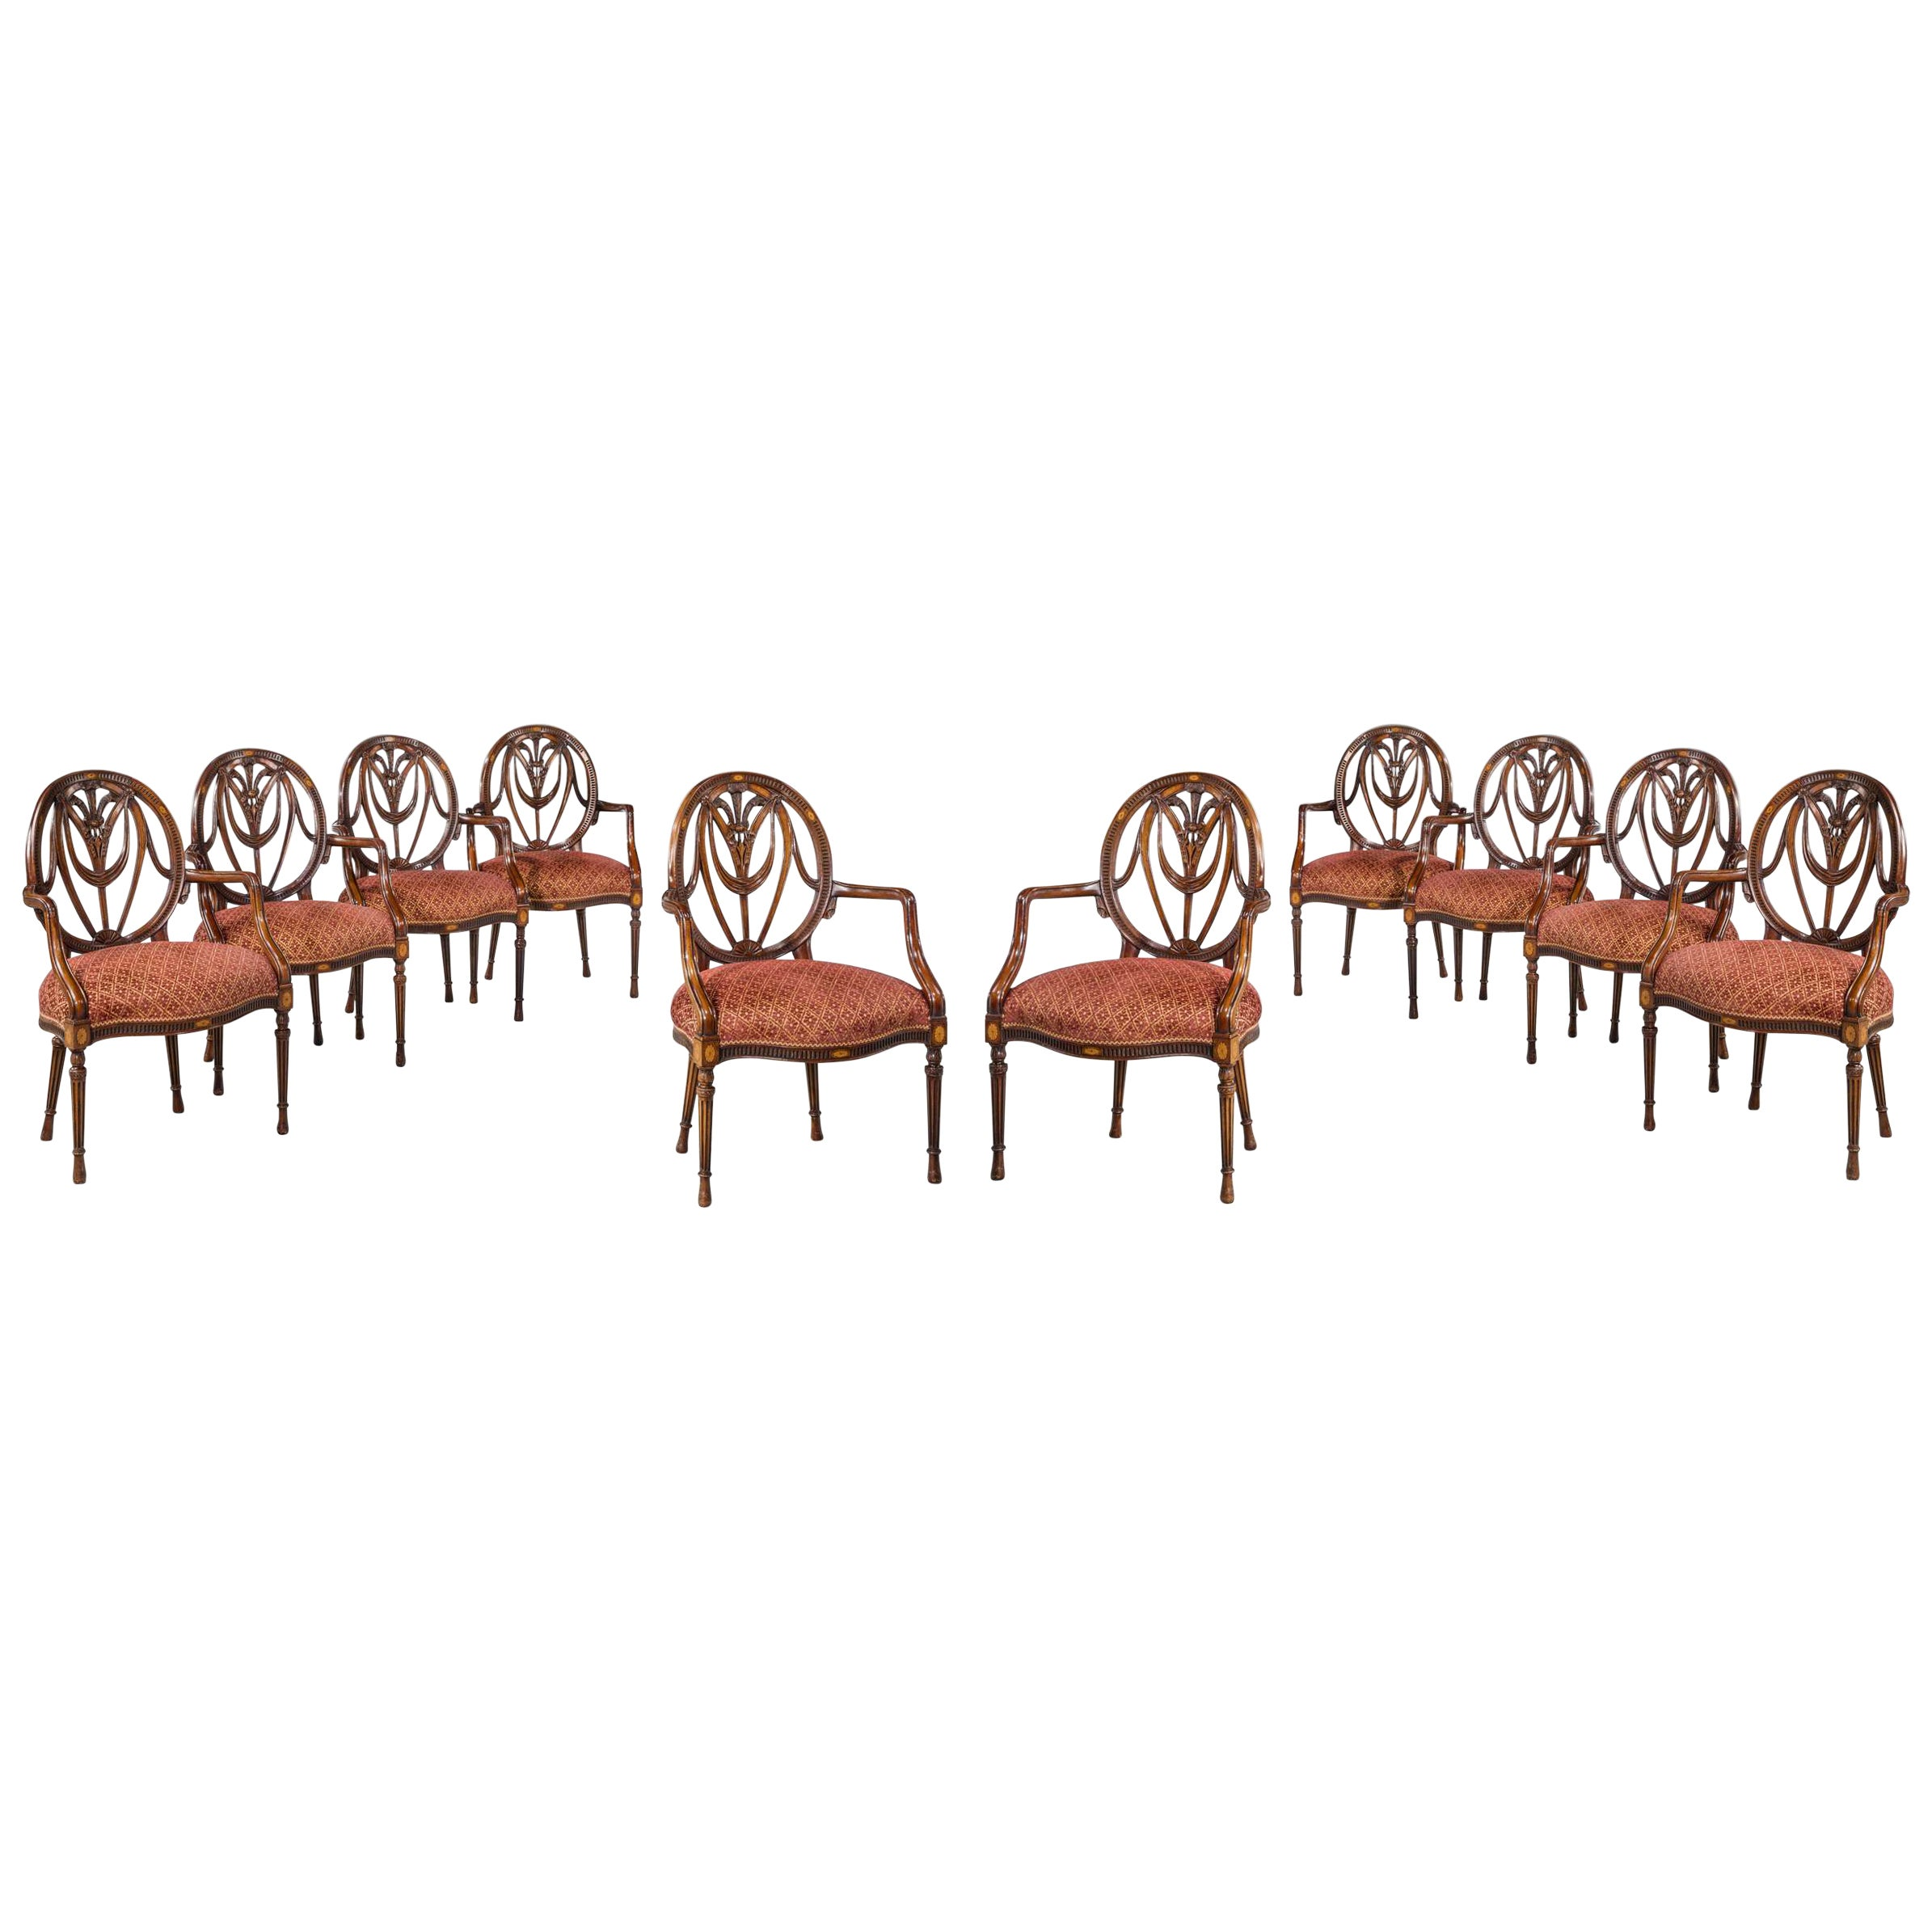 90741629ae83 Set of Ten Mid-20th Century Mahogany Elbow Chairs For Sale at 1stdibs